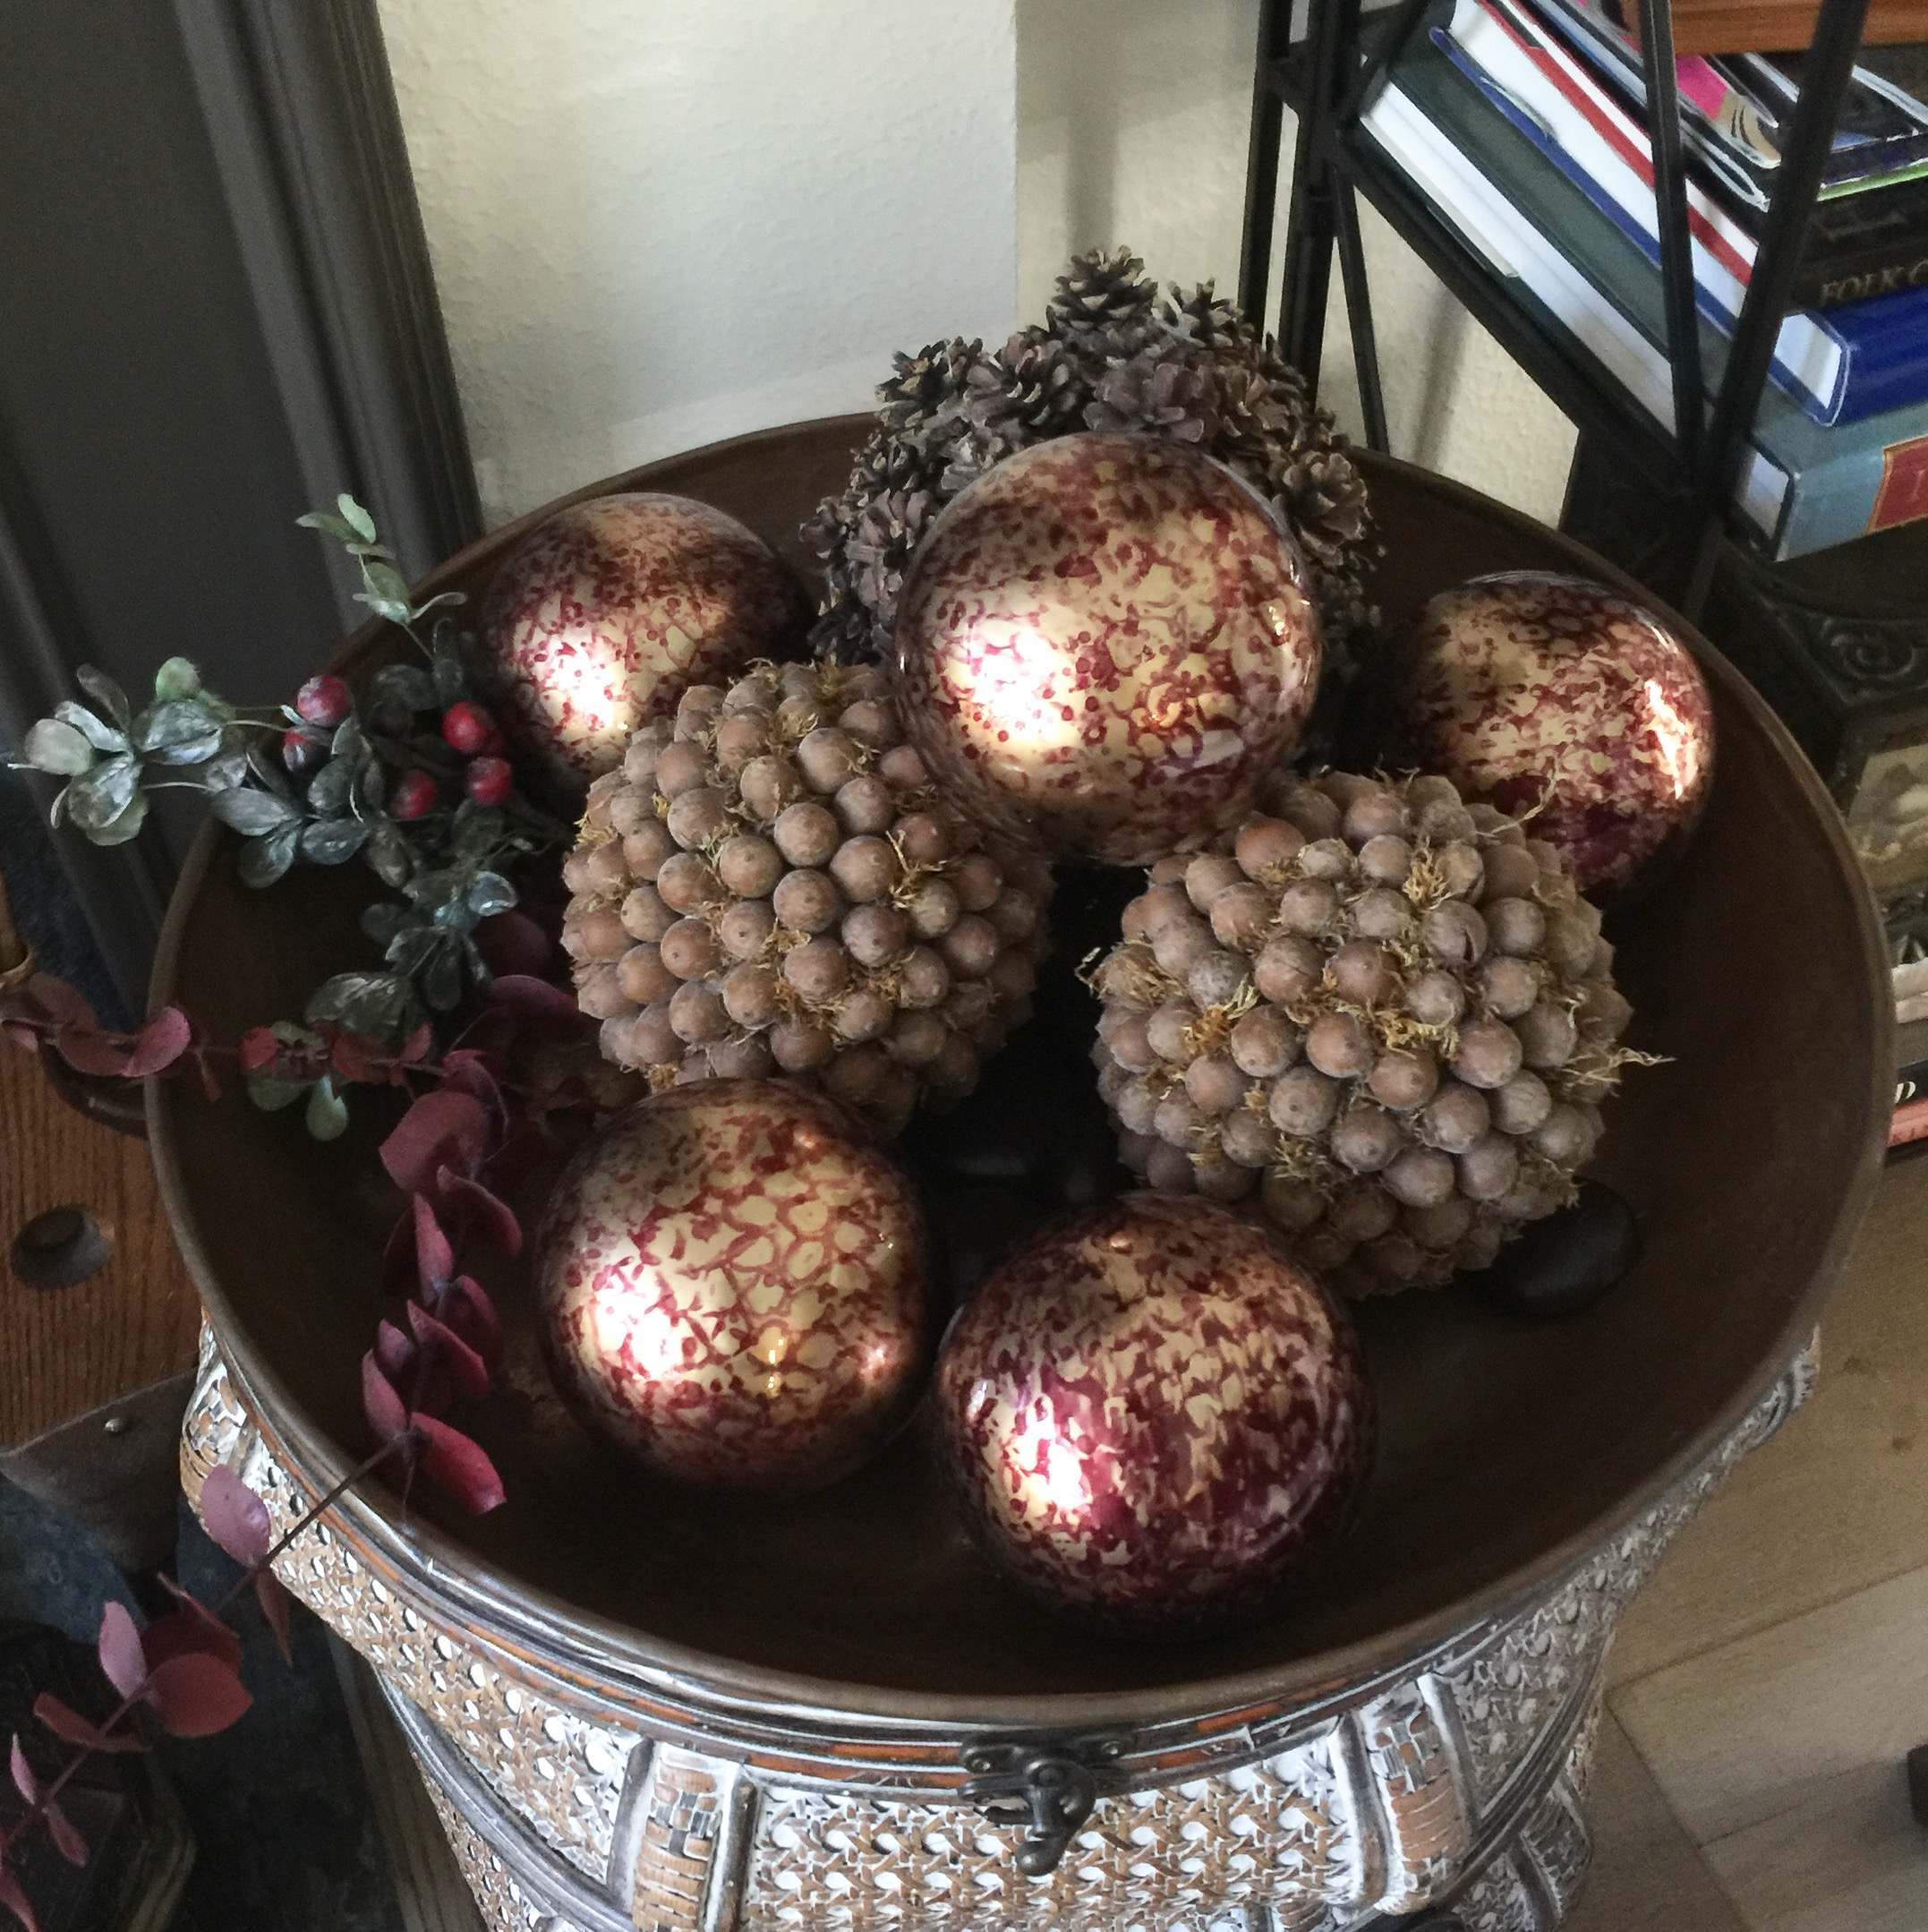 Ornaments and acorn balls in bowl- holiday decor